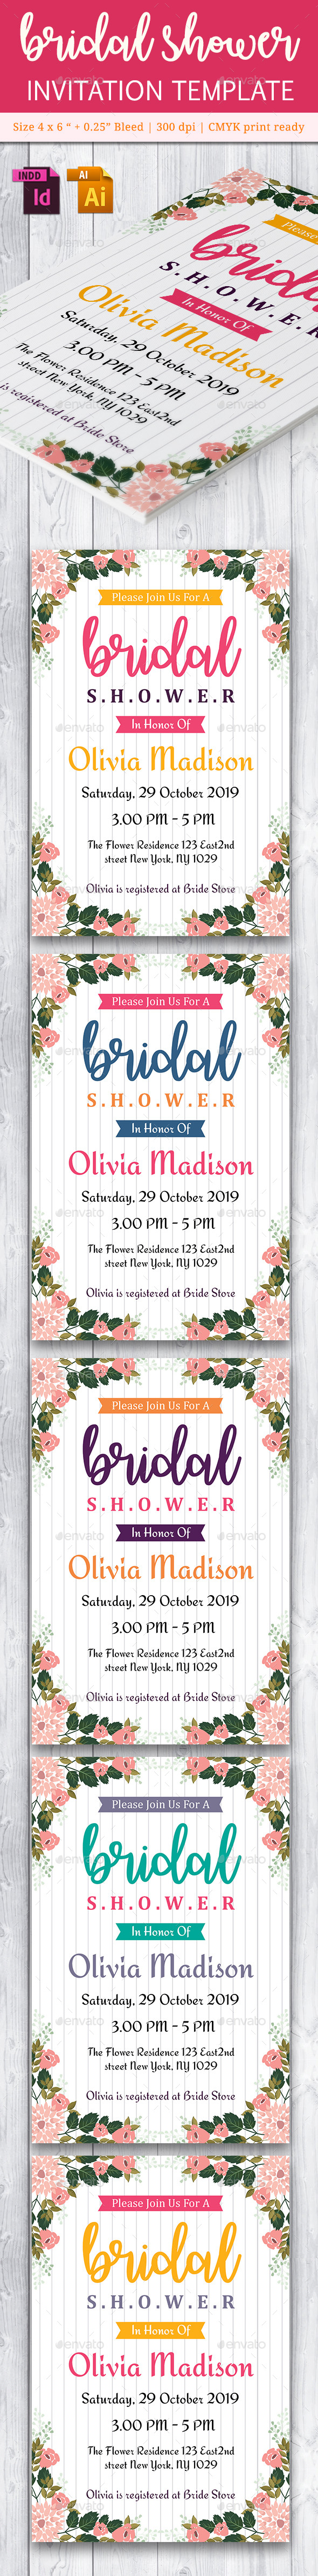 Bridal Shower Invitation Template - Vol. 4 - Cards & Invites Print Templates